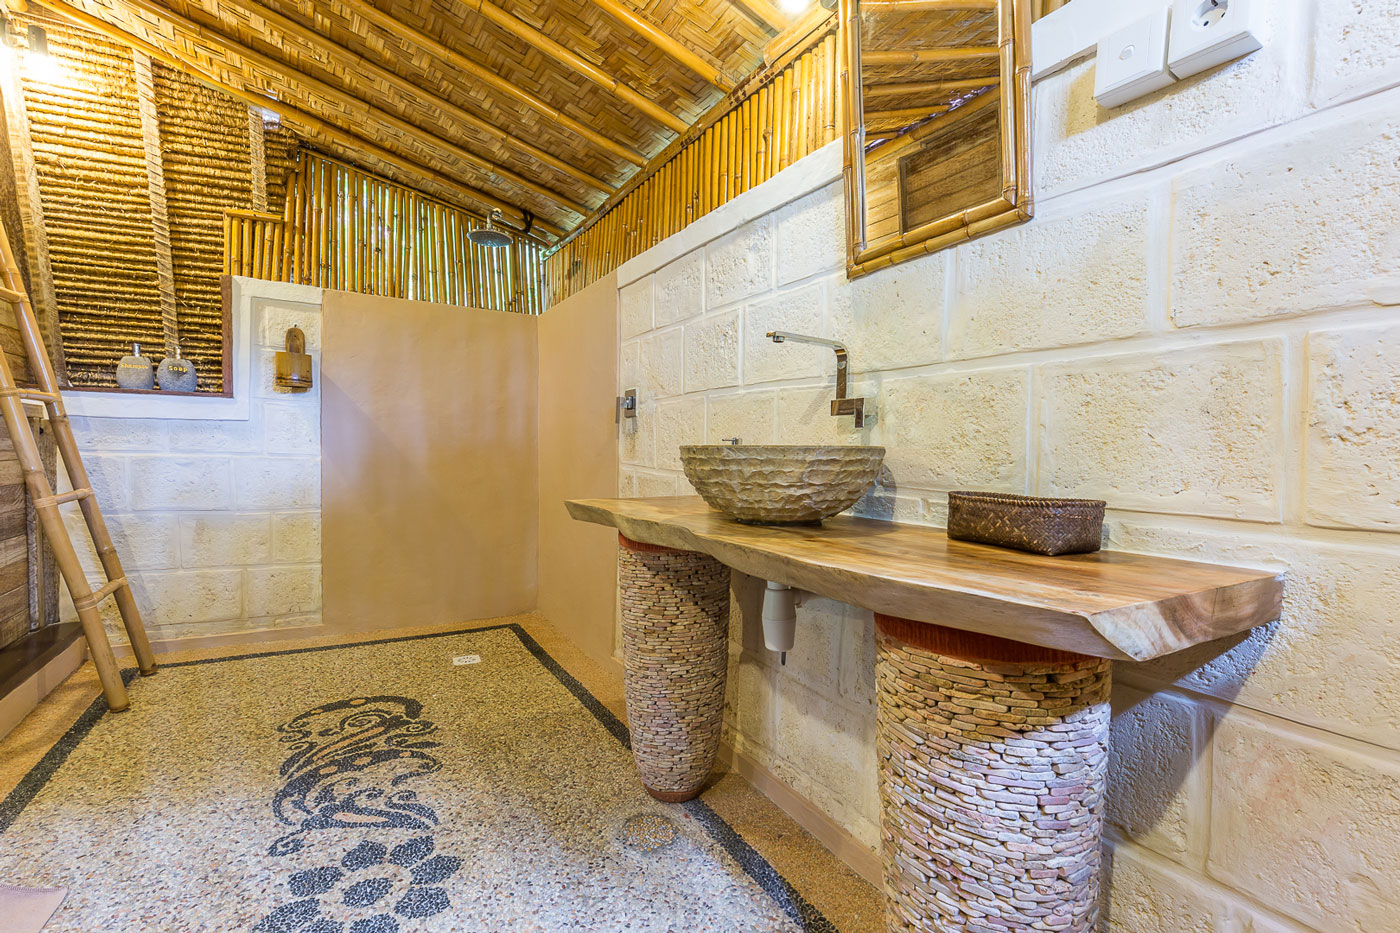 Location-bungalows-maison-hote-hotel-milos-home-L4-master-deluxe-2